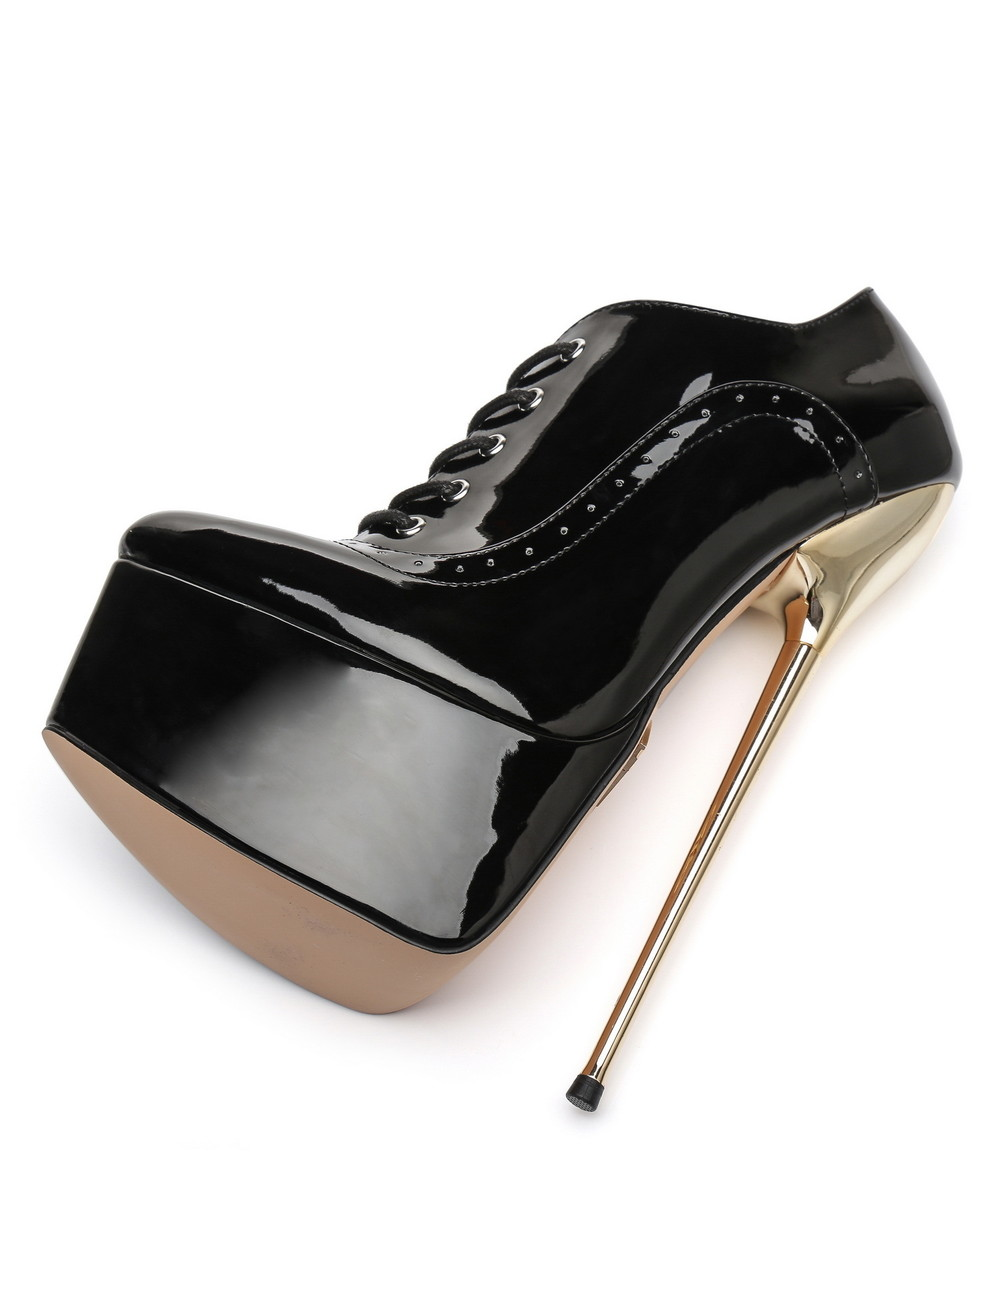 Giaro SLICK Black shiny Giaro ultra Fetish platform oxfords with gold heels